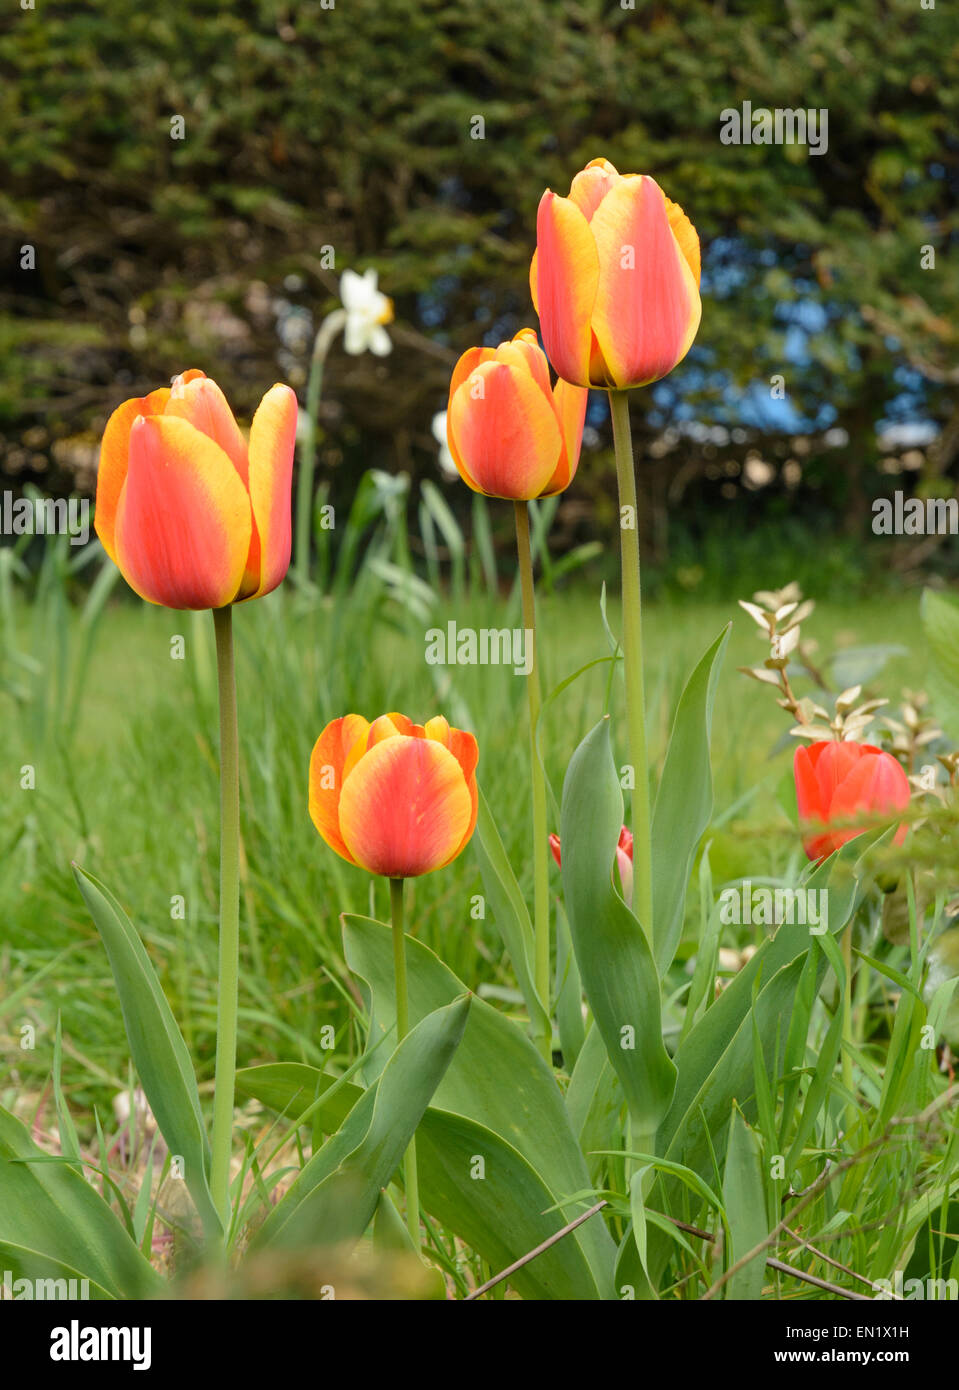 Orange and yellow tulips in Southern England, UK, in late Spring. Stock Photo